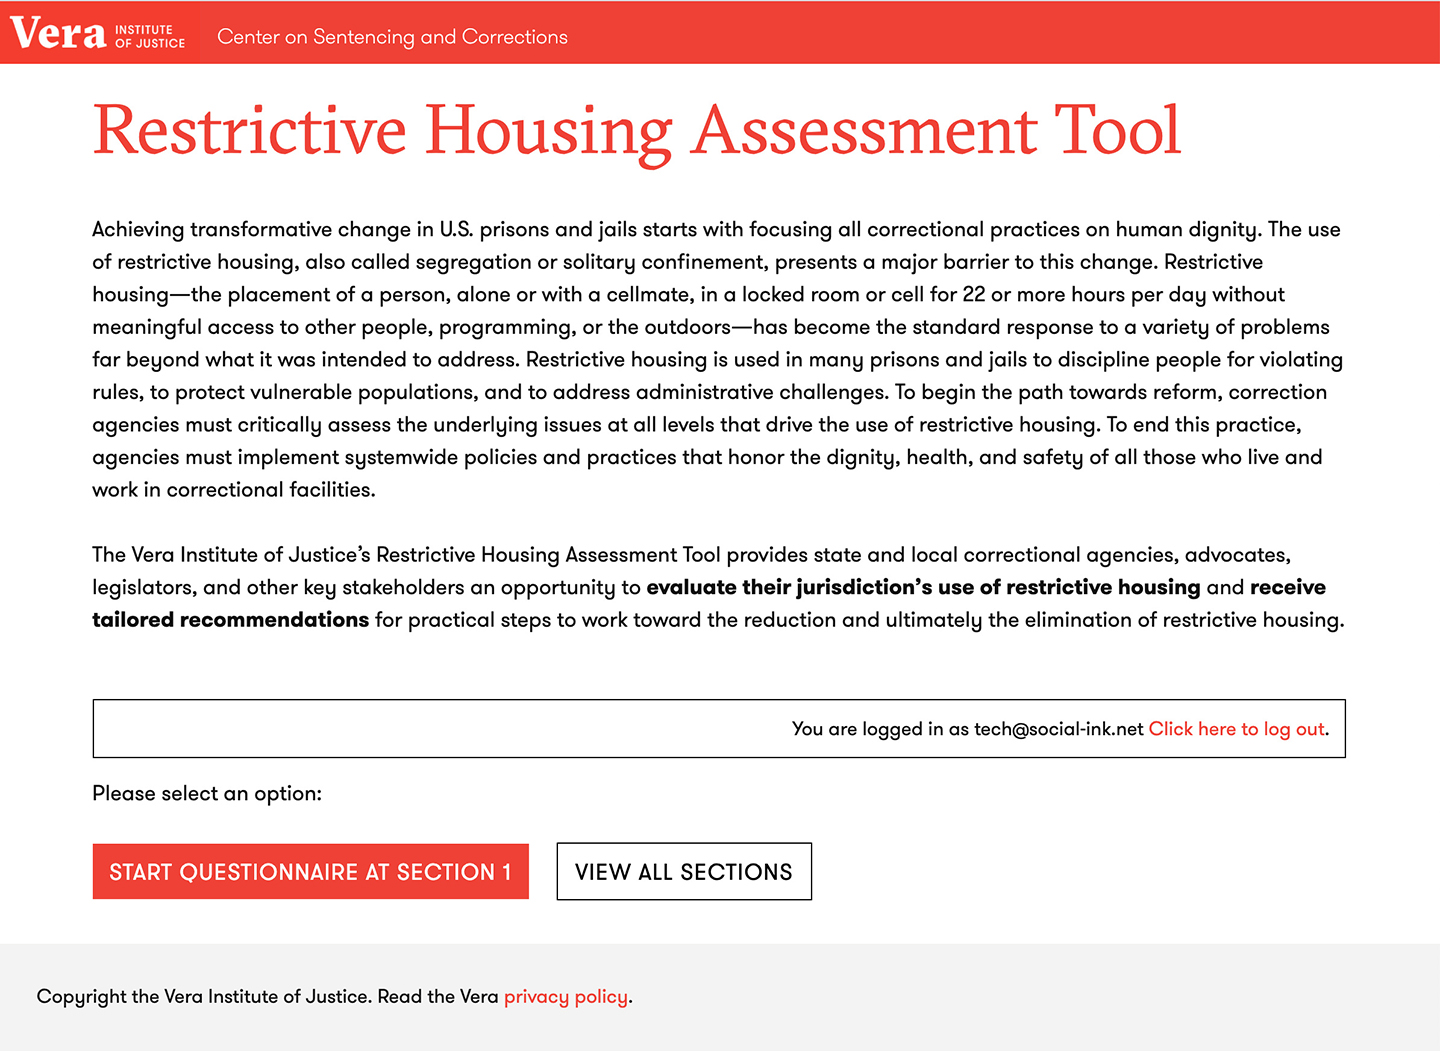 New Web Application launched for the Vera Institute of Justice: The Restrictive Housing Assessment Tool